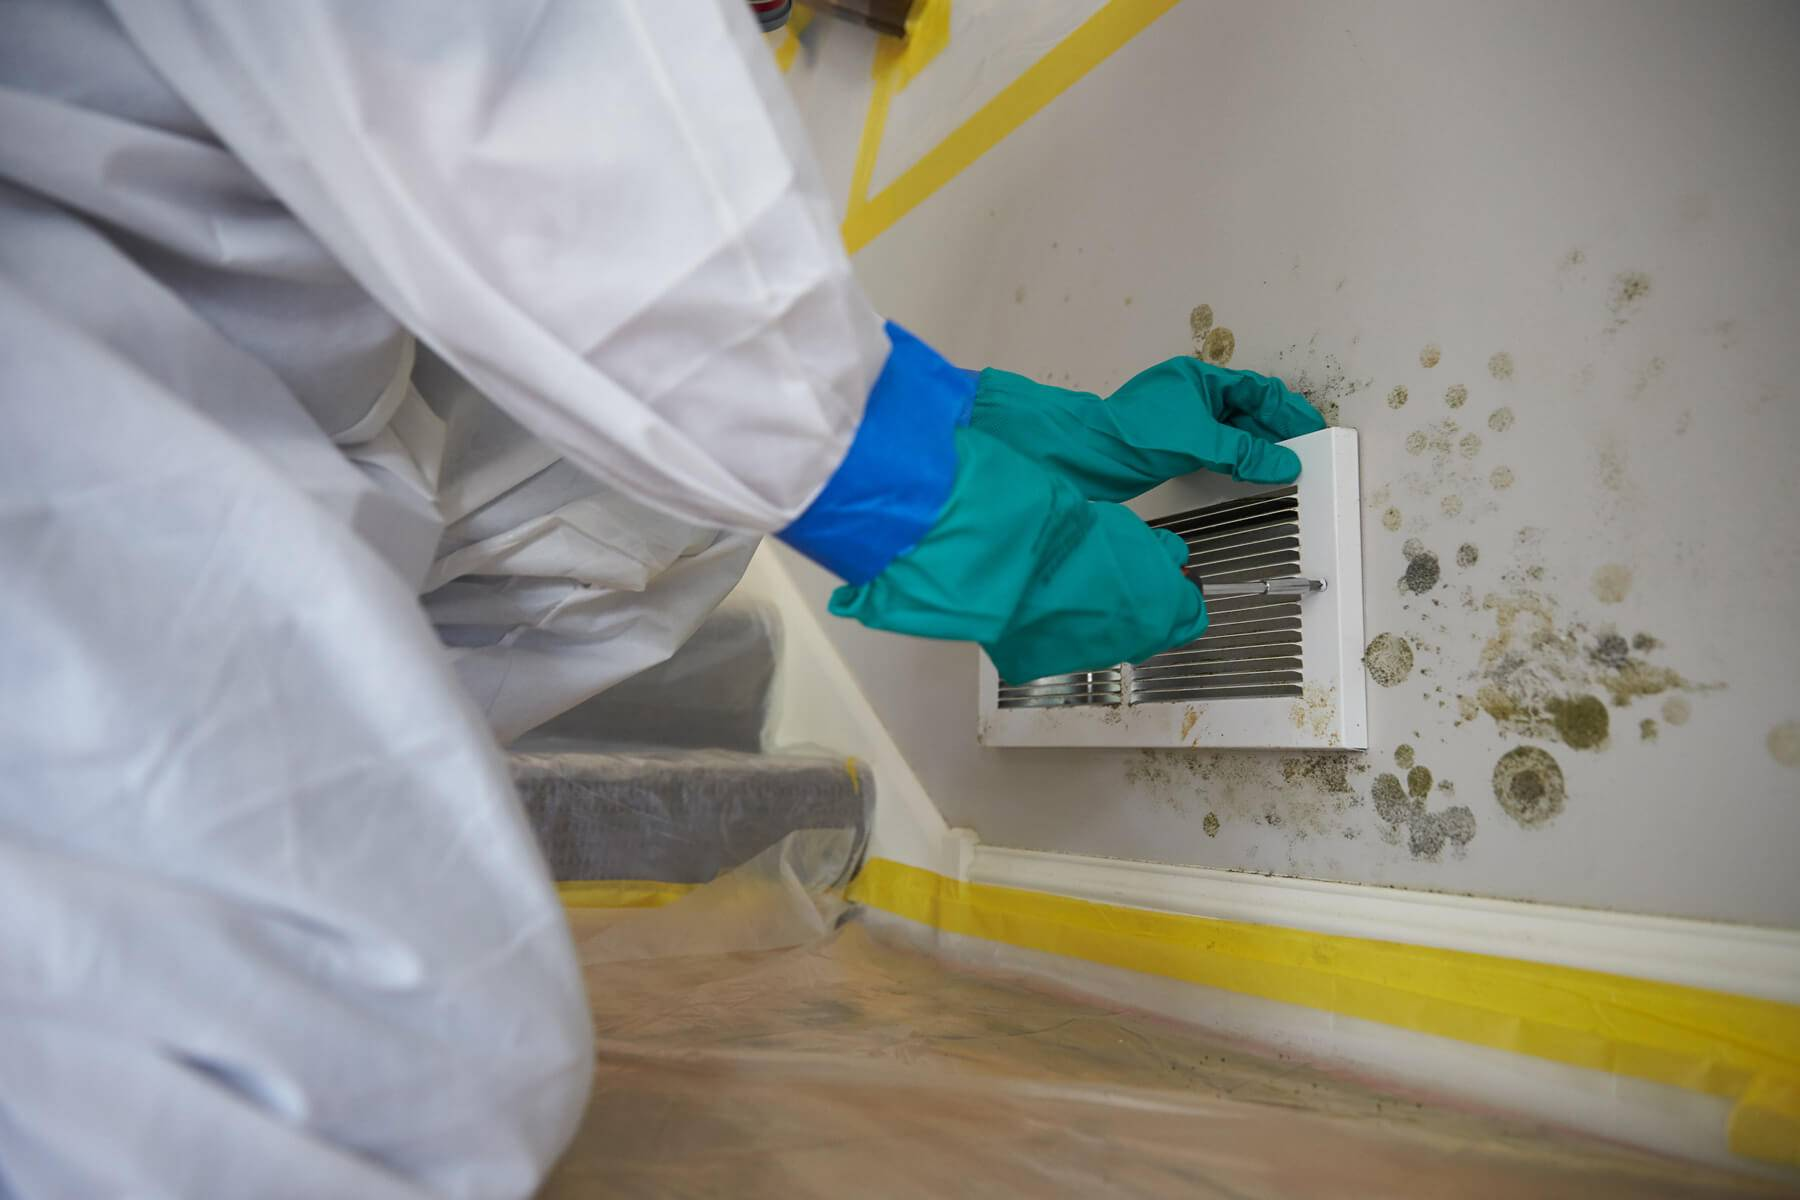 What to Expect from a Mold Removal Company